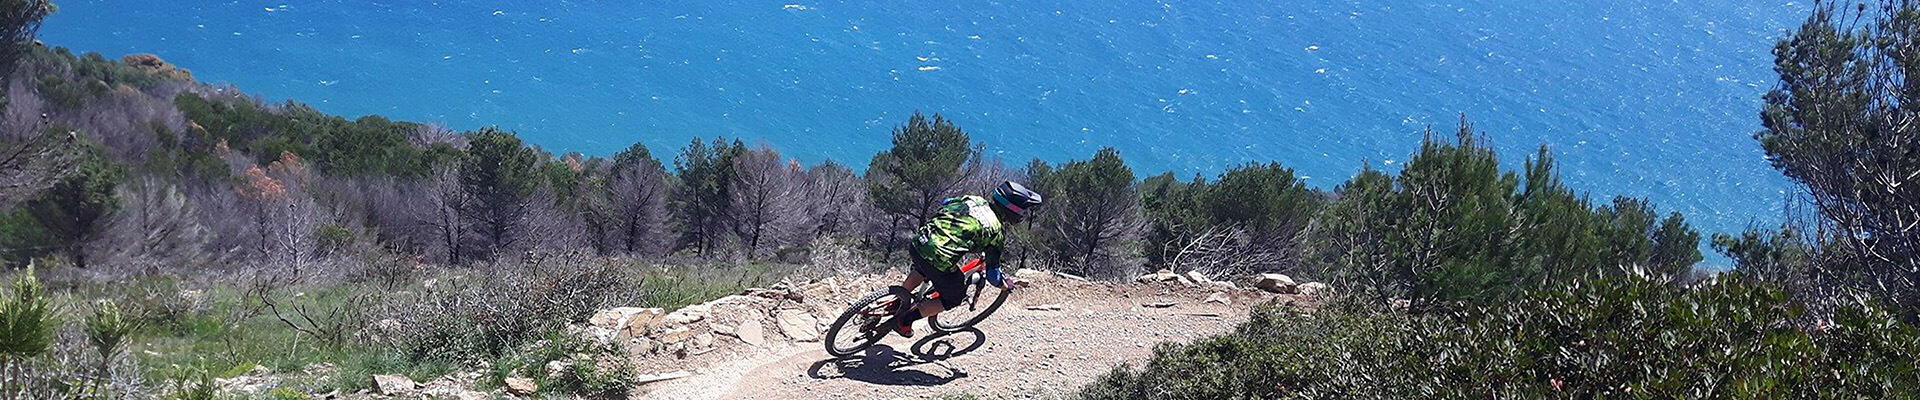 MTB trails with breathtaking views from hills to sea